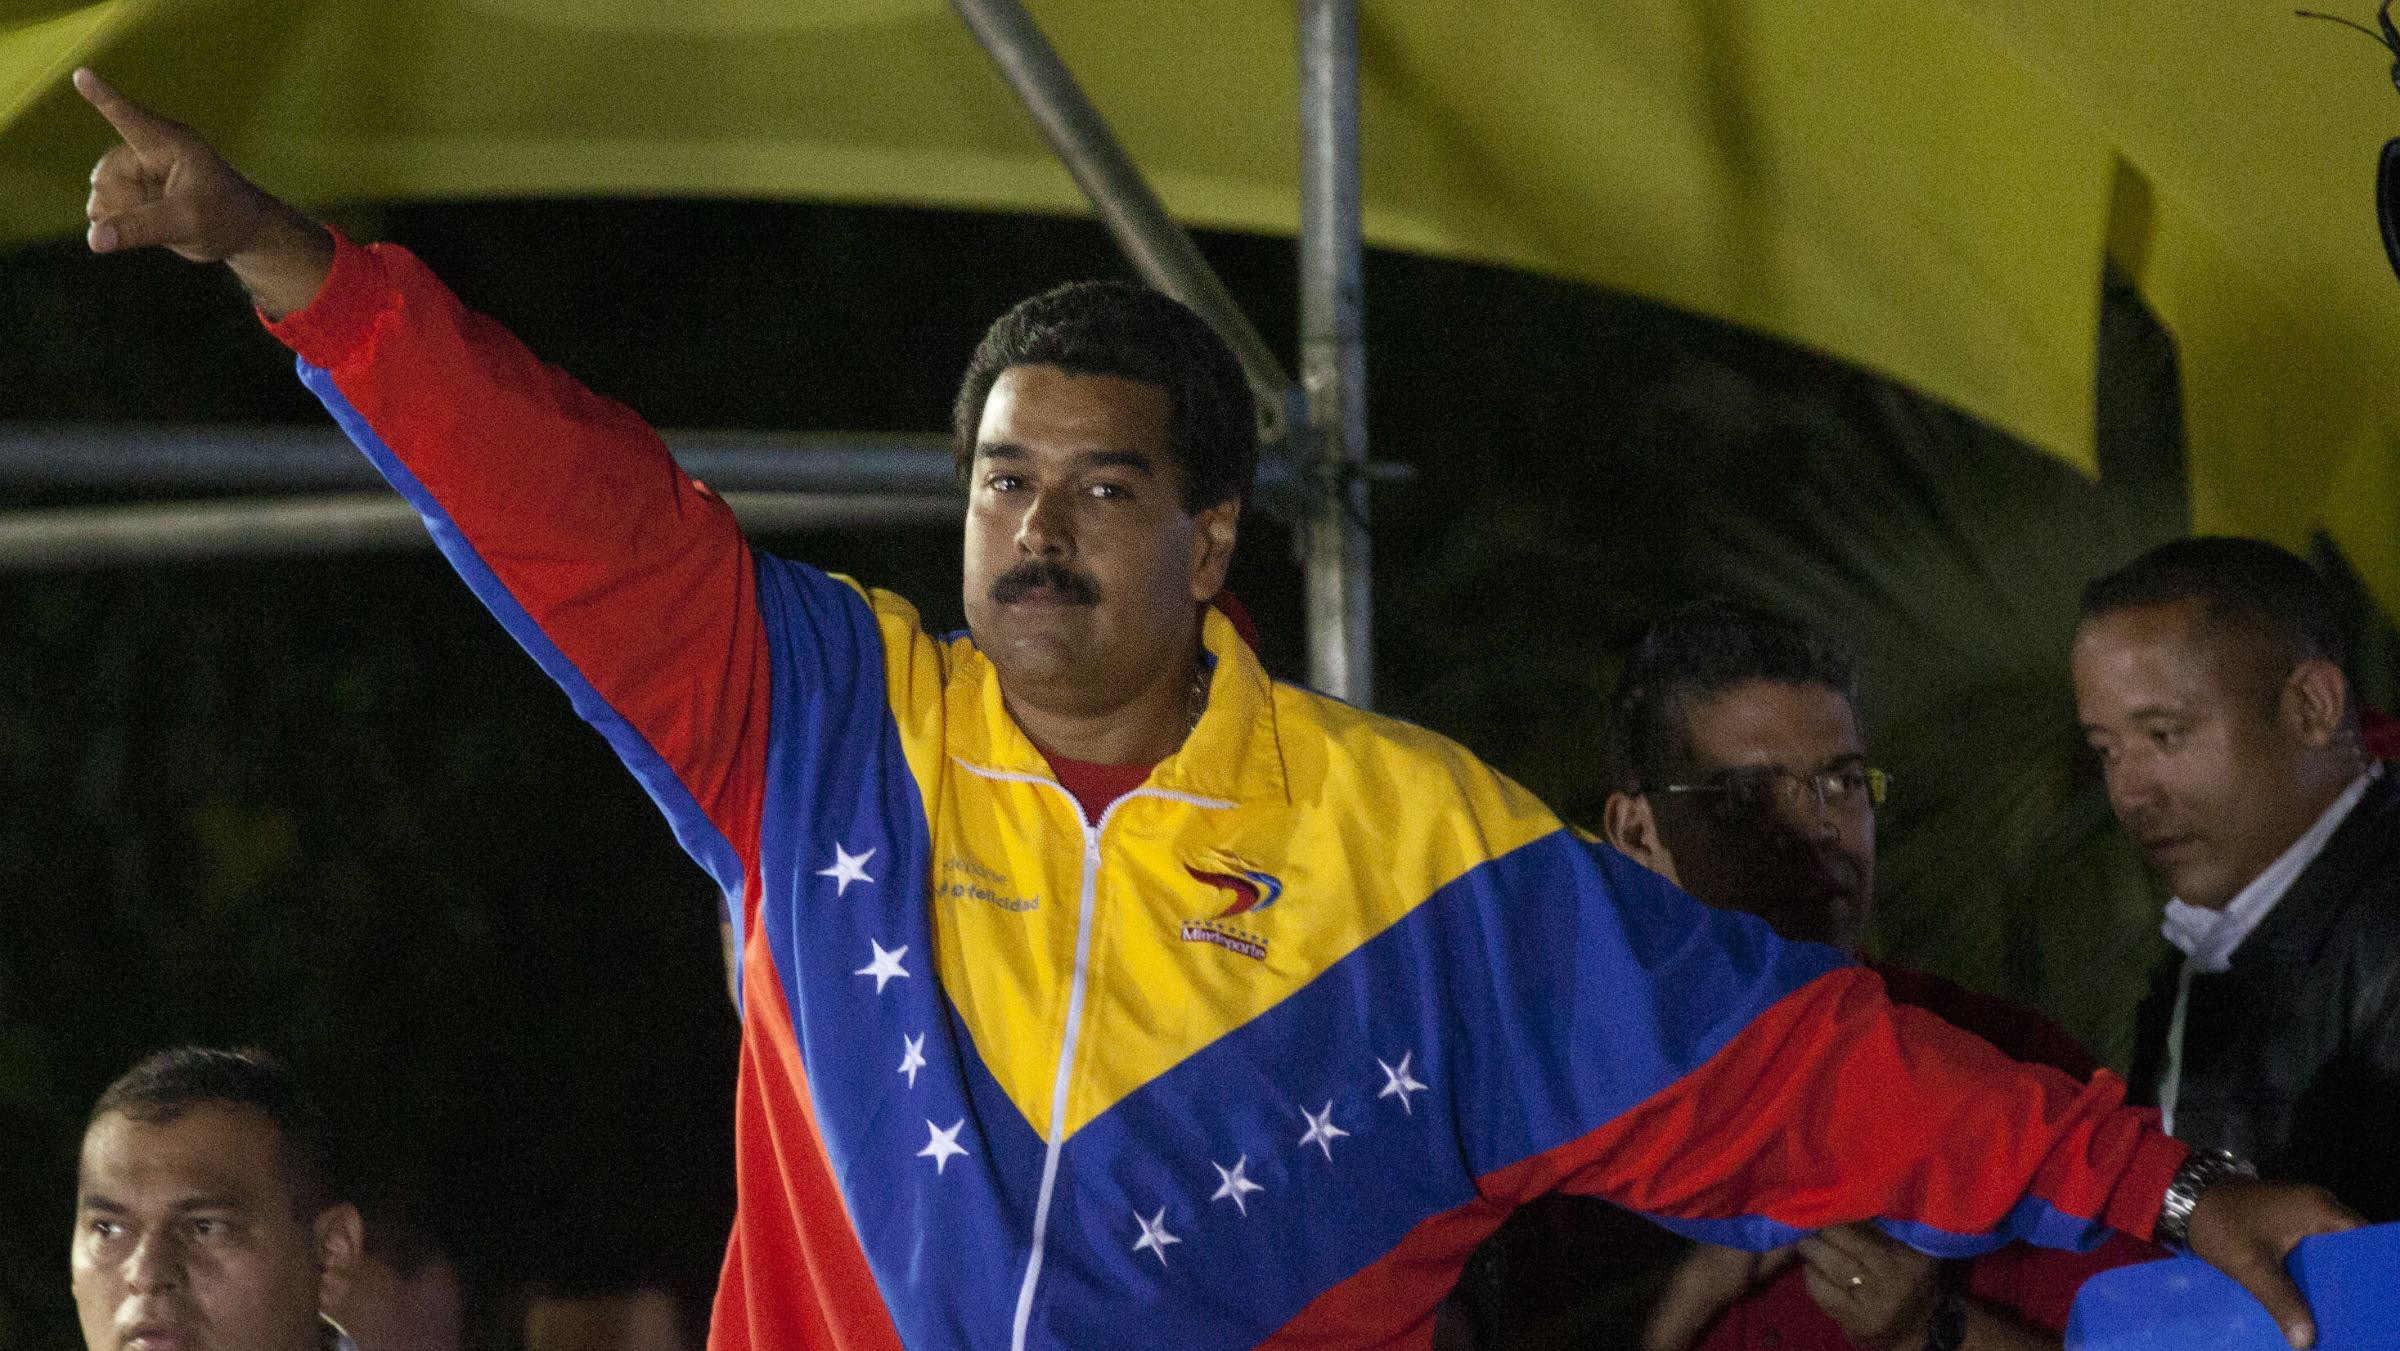 Venezuela's newly elected President Nicolas Maduro celebrates his victory after the official results of the presidential elections were announced, at the Miraflores Palace in Caracas, Venezuela, late Sunday, April 14, 2013. Maduro, Hugo Chavez's hand-picked successor, won a razor-thin victory in Sunday's special presidential election, edging the opposition leader Henrique Capriles by only about 300,000 votes, electoral officials announced. (AP Photo/Ramon Espinosa